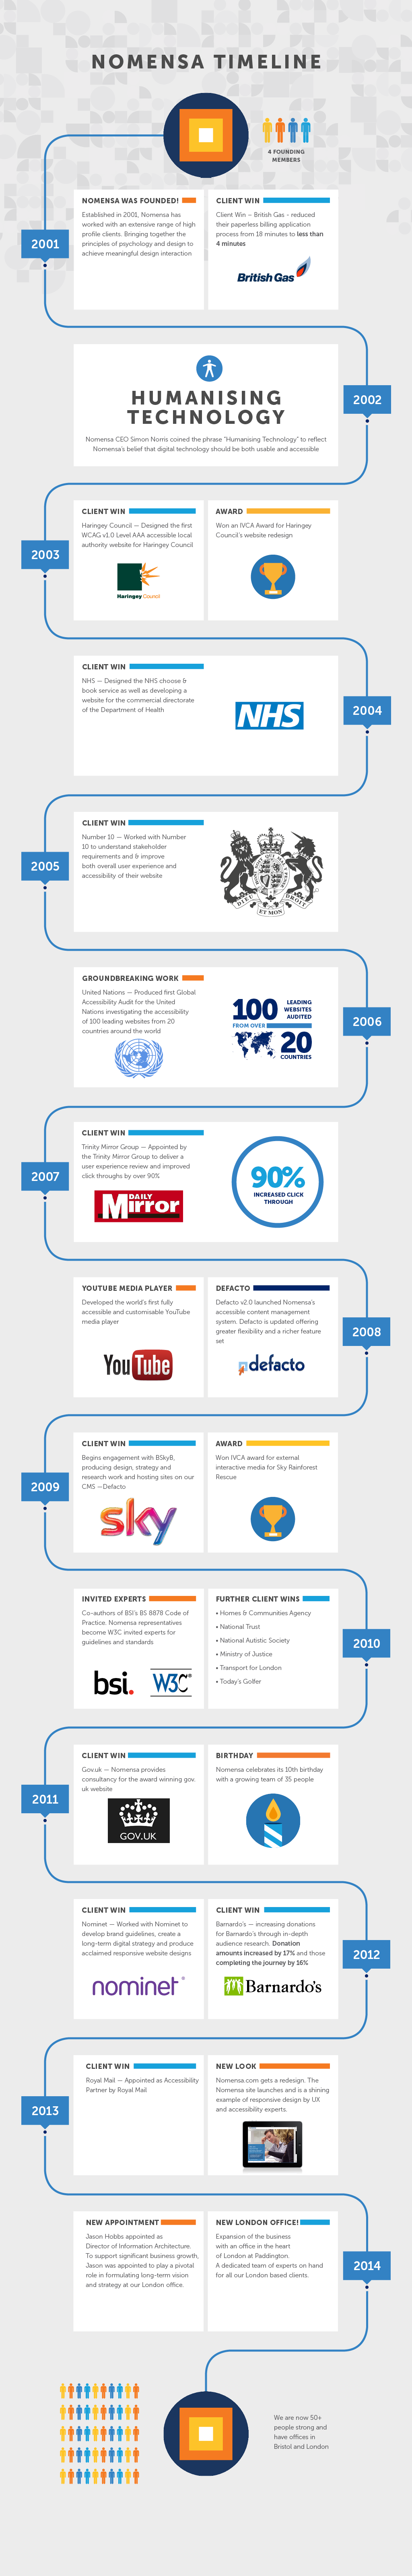 Infographic showing Nomensa's history 2001-2014